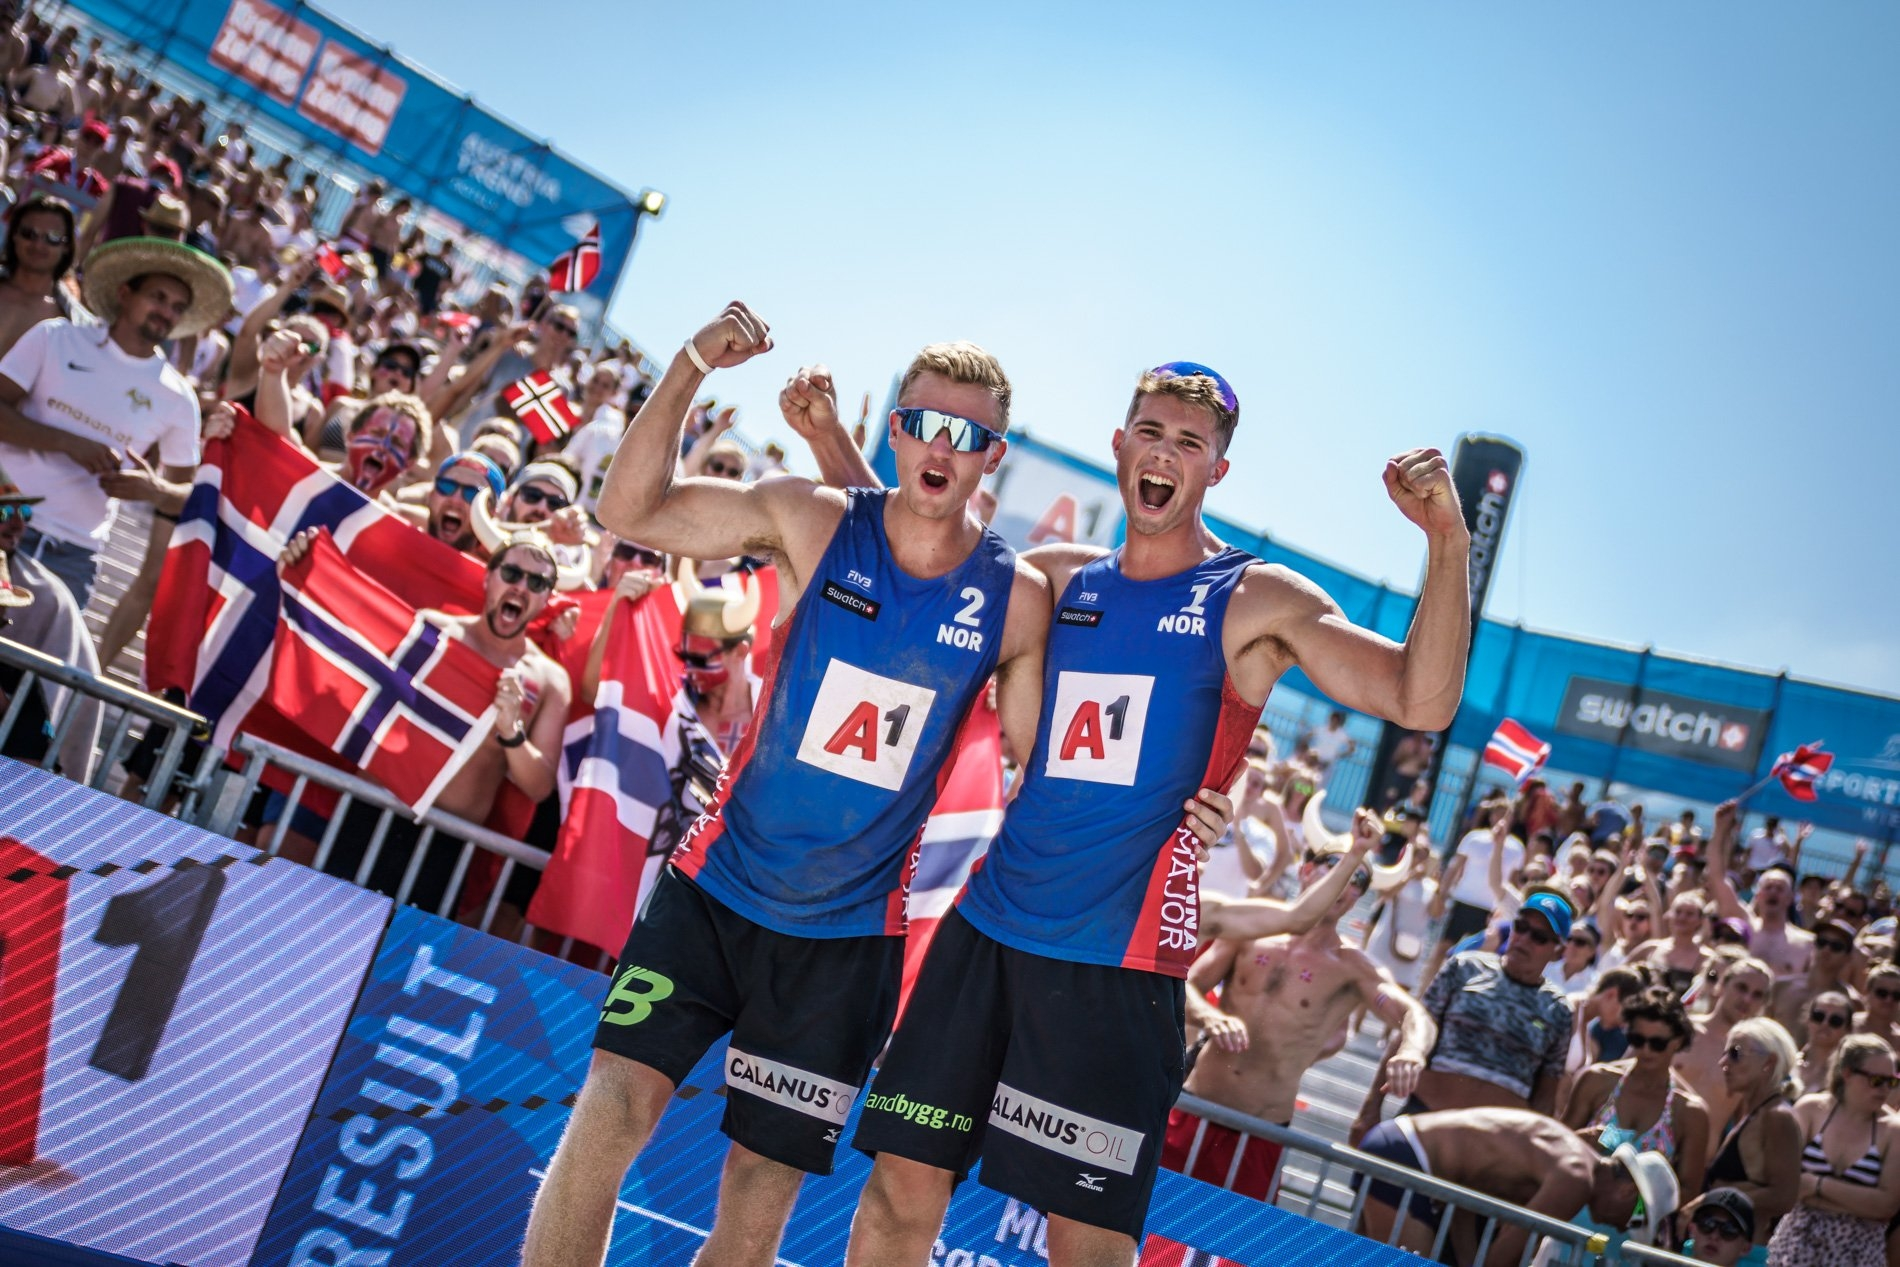 Sørum and Mol are in great form as they debut in the World Tour Finals